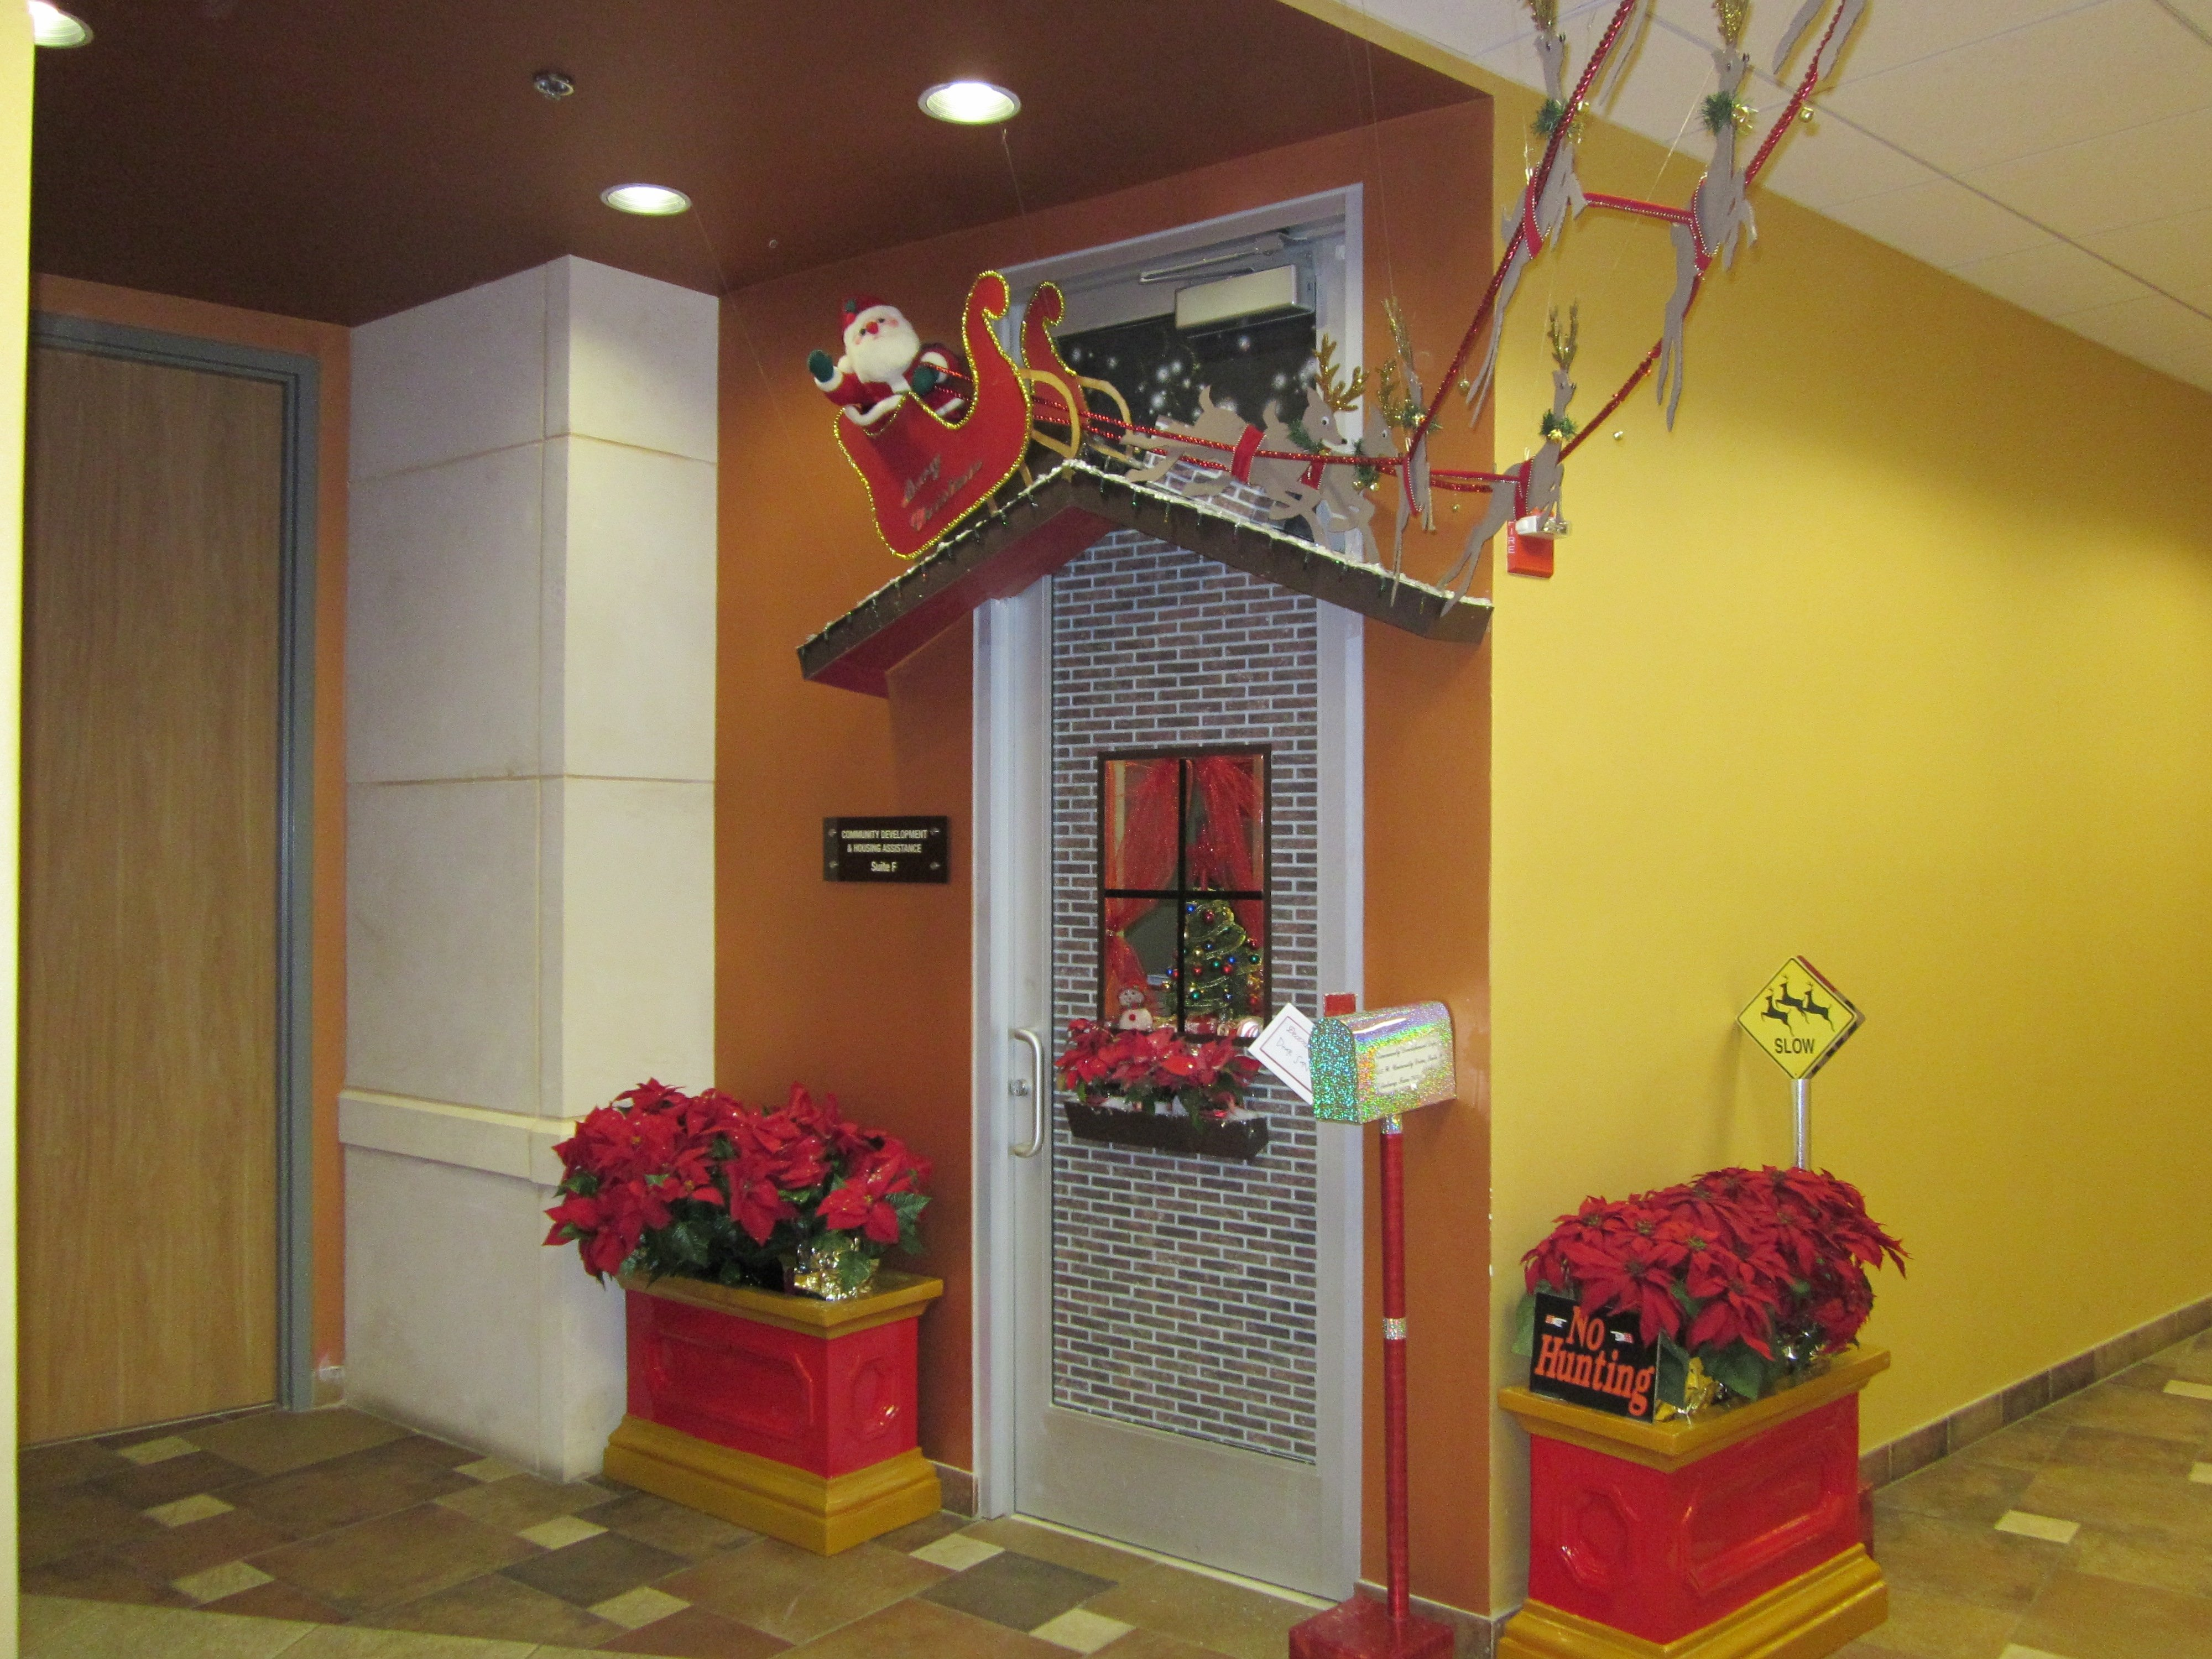 10 Most Recommended Christmas Door Decorating Contest Ideas christmas door decorating contest slideshow dma homes 68549 5